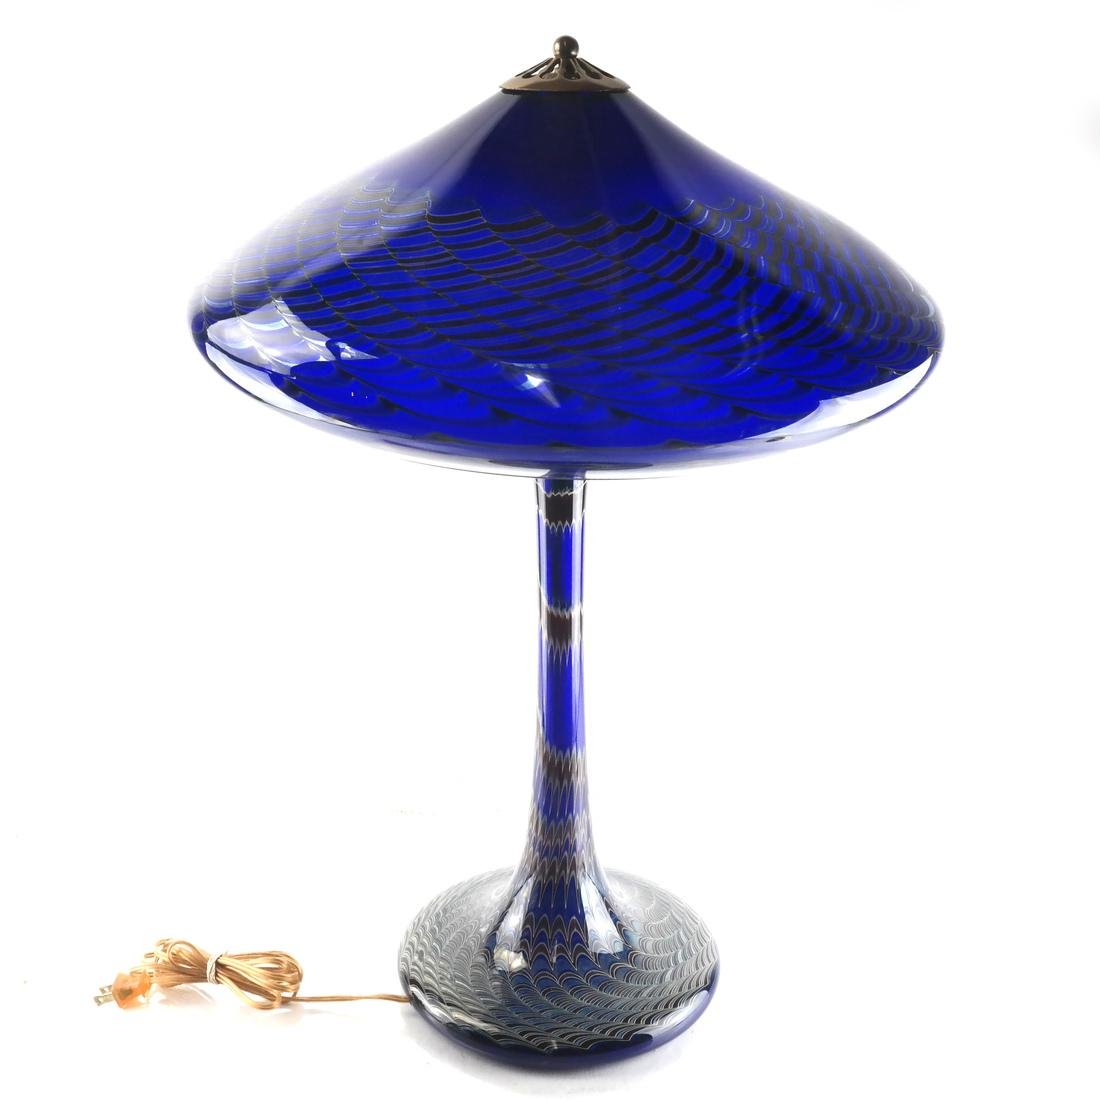 Joe Clearman Blown Glass Table Lamp